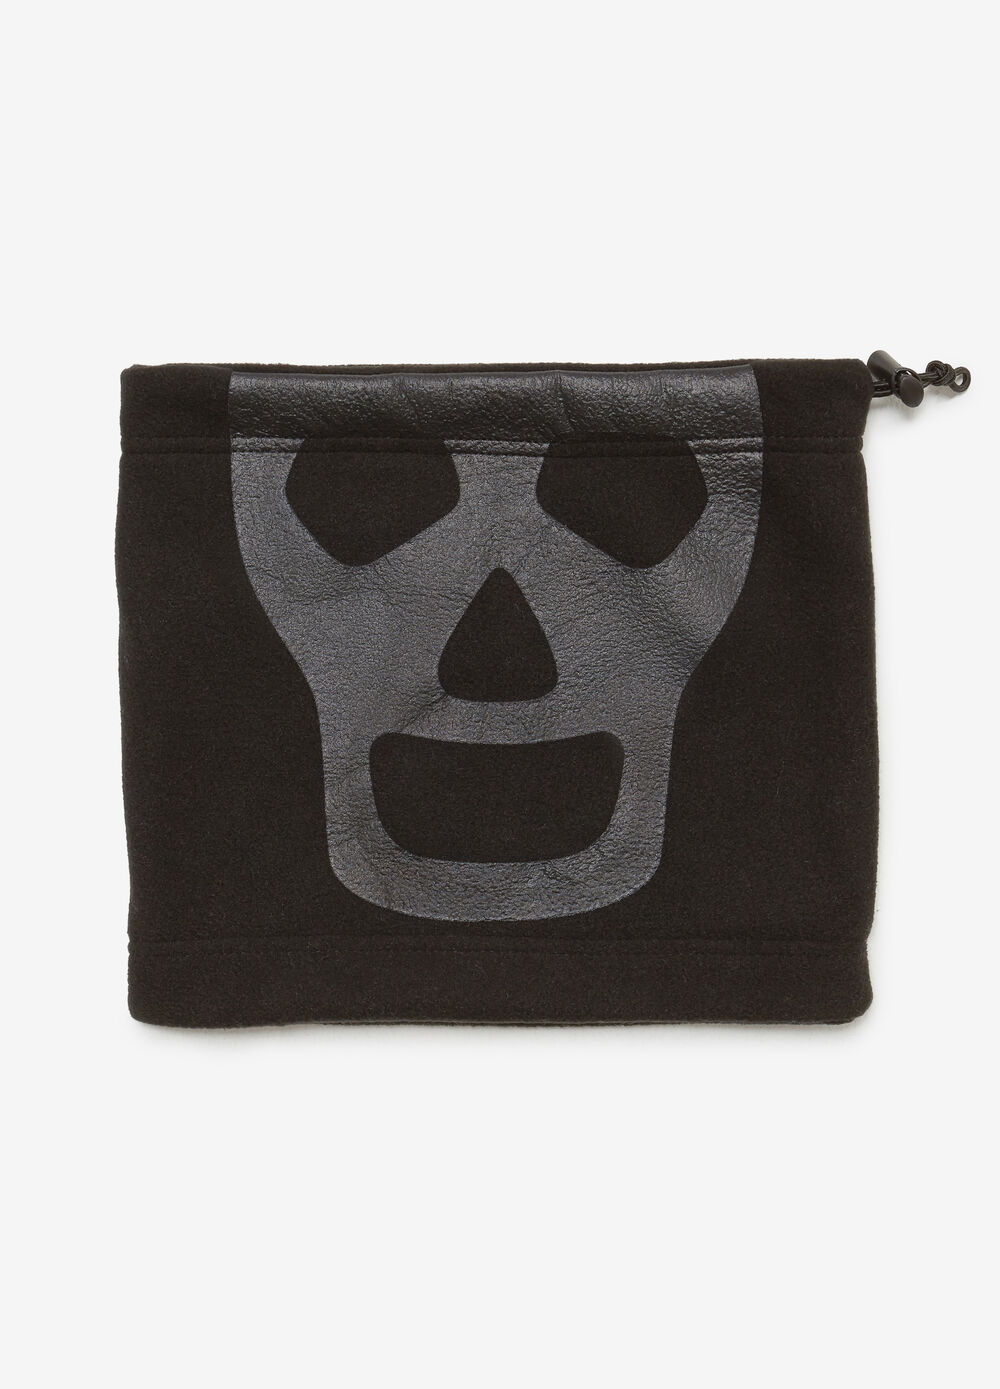 Neck warmer with drawstring and skull print